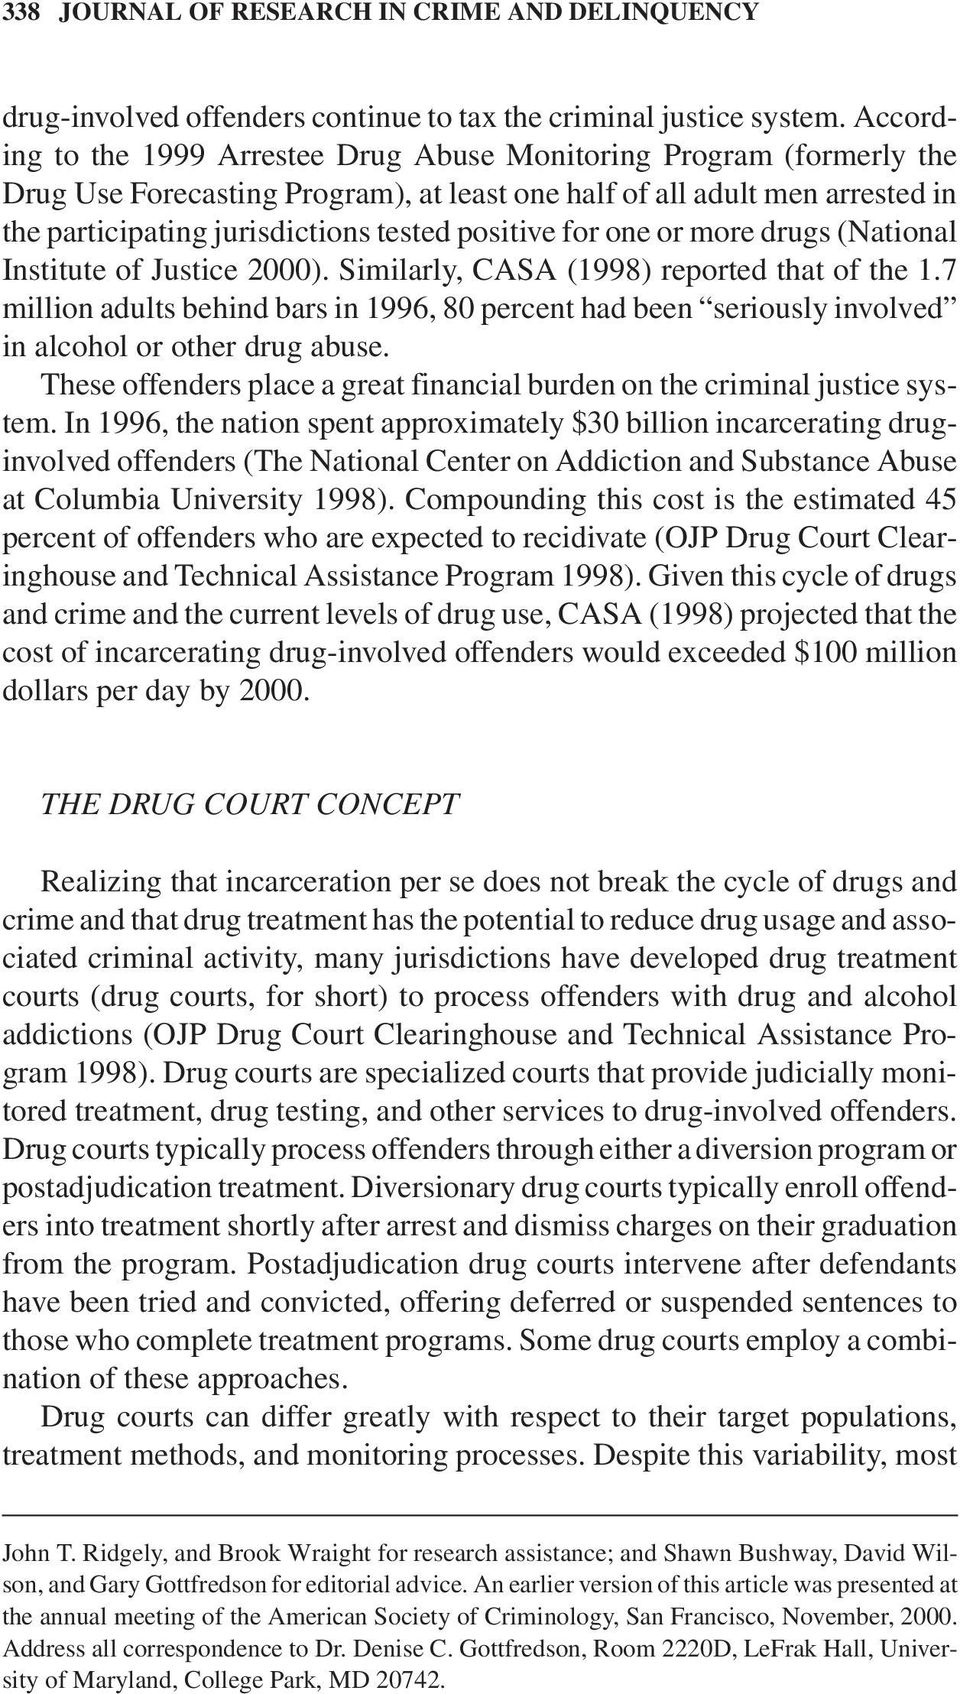 for one or more drugs (National Institute of Justice 2000). Similarly,CASA (1998) reported that of the 1.